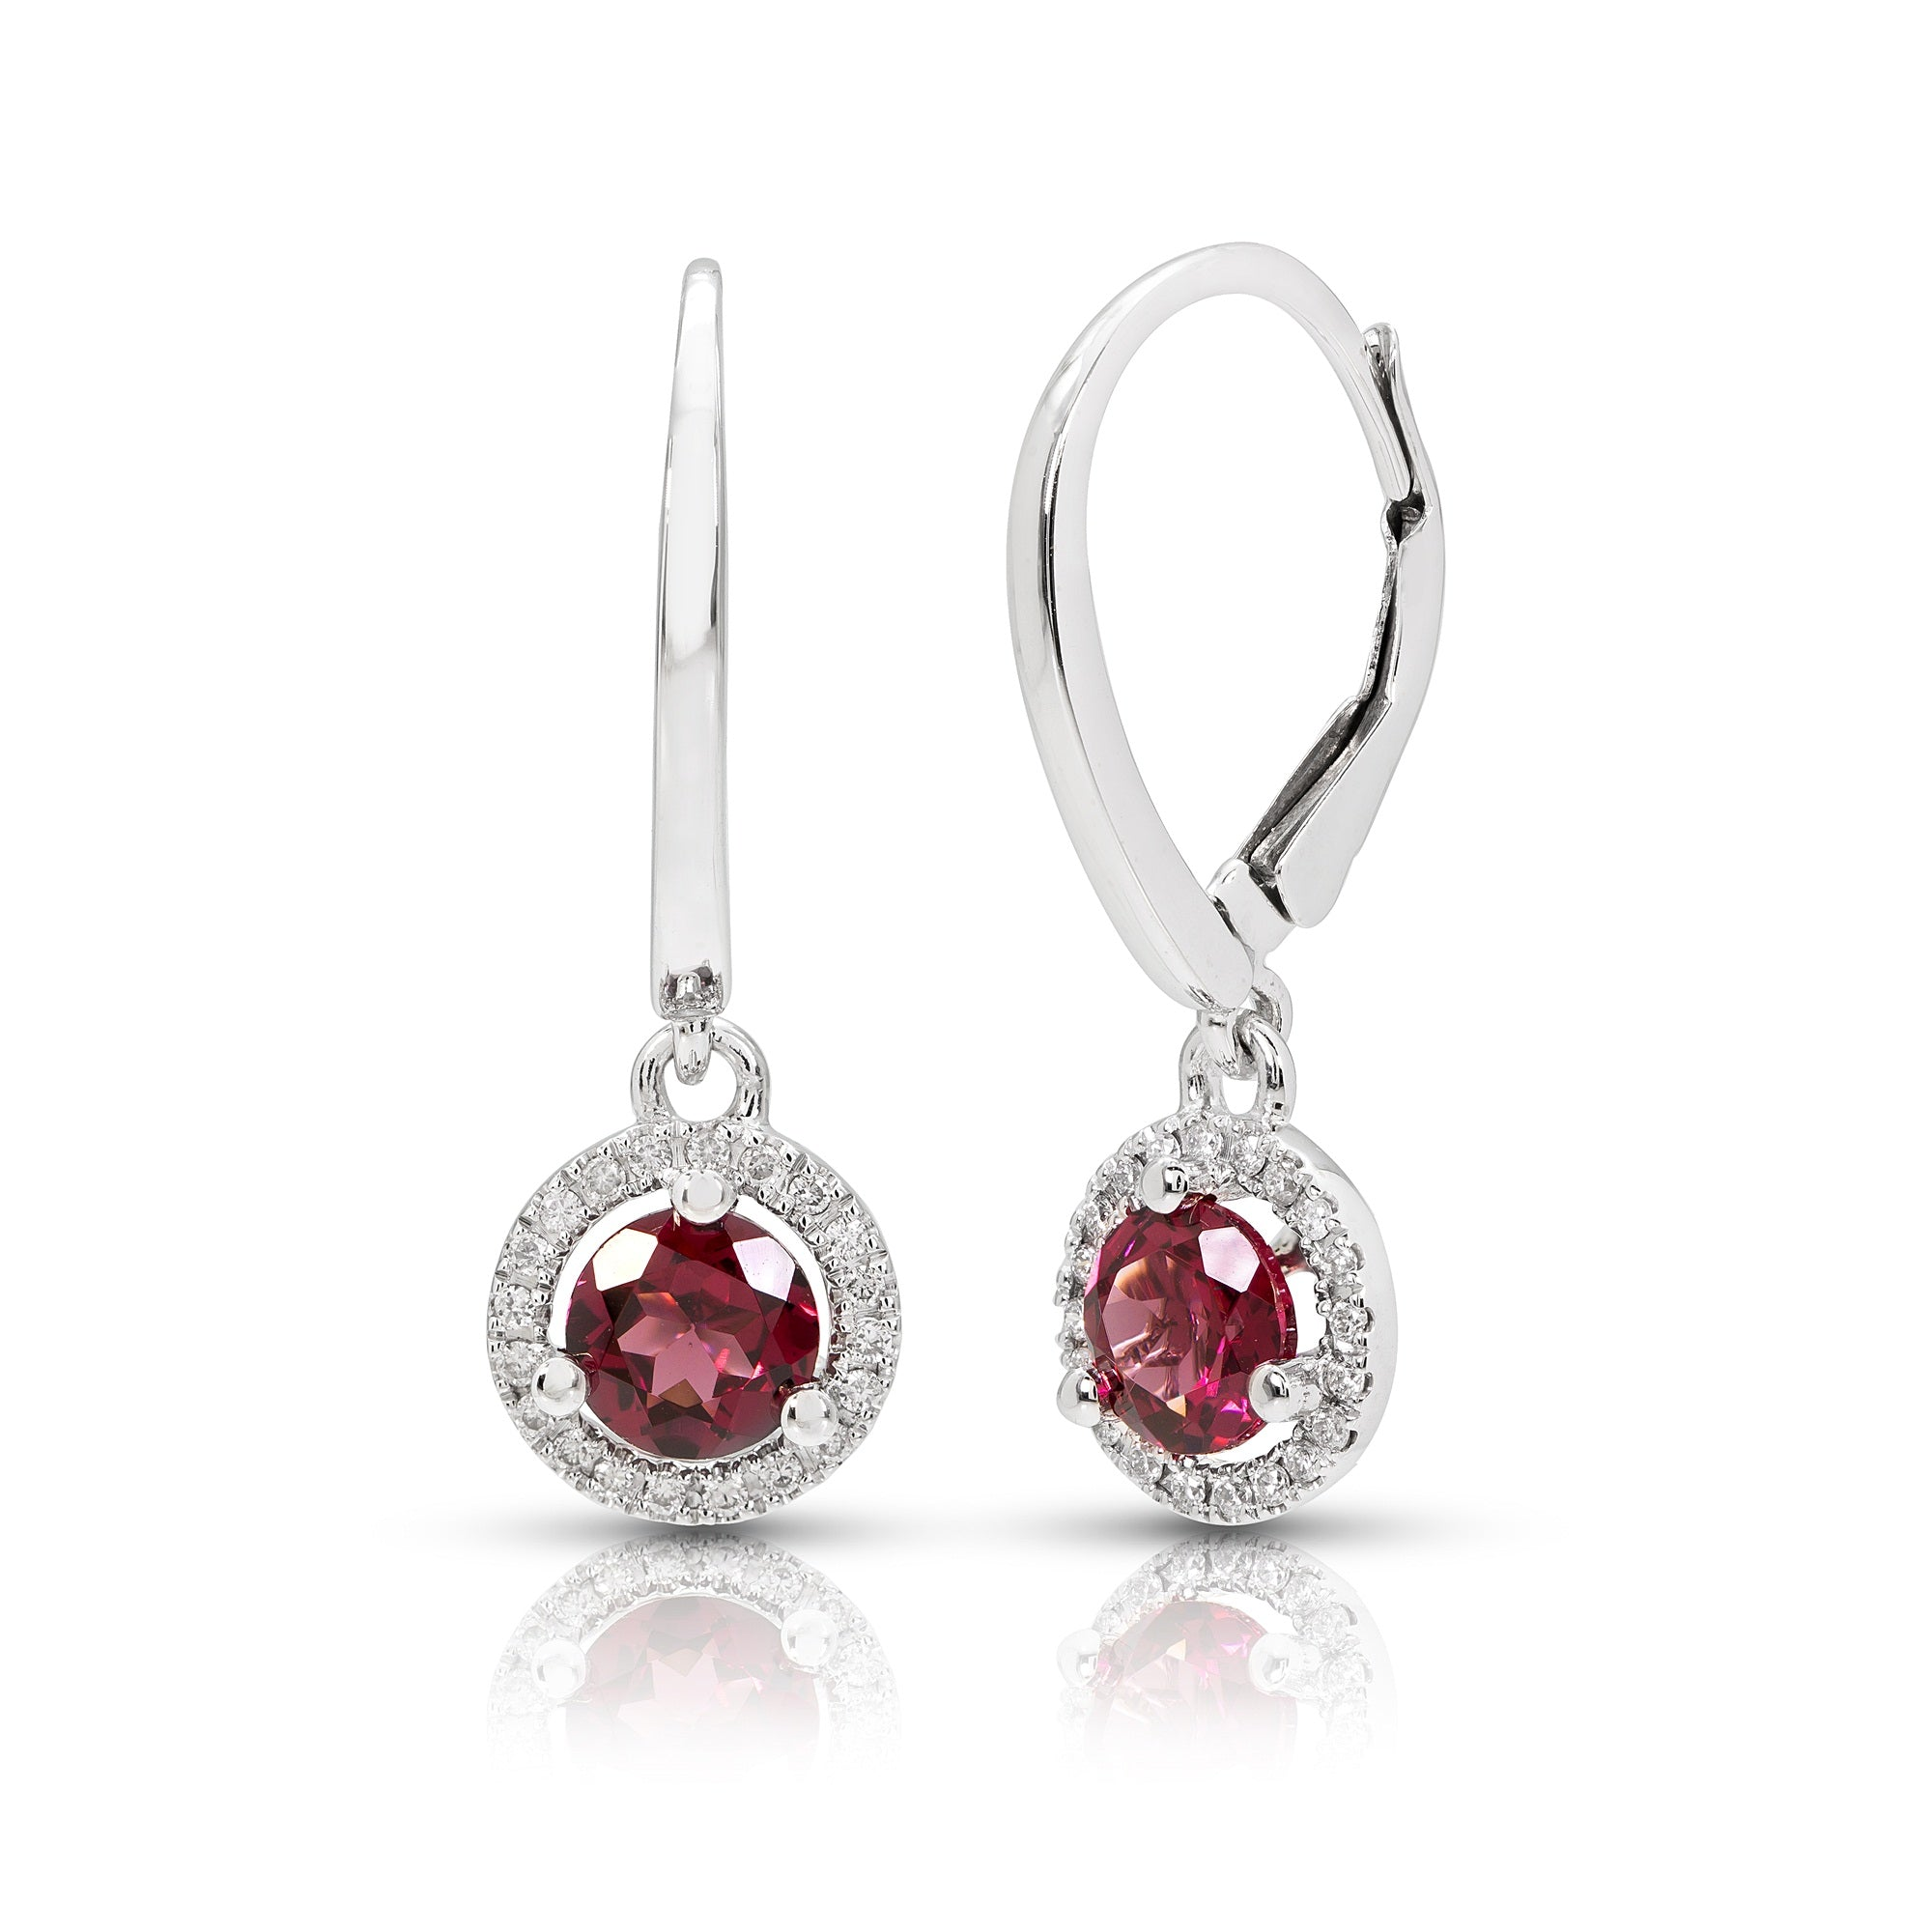 fancy white and of ndo balls shop dots dotsballs rhodolite ball jewellery bordo black collection earrings spinel chaine info garnet